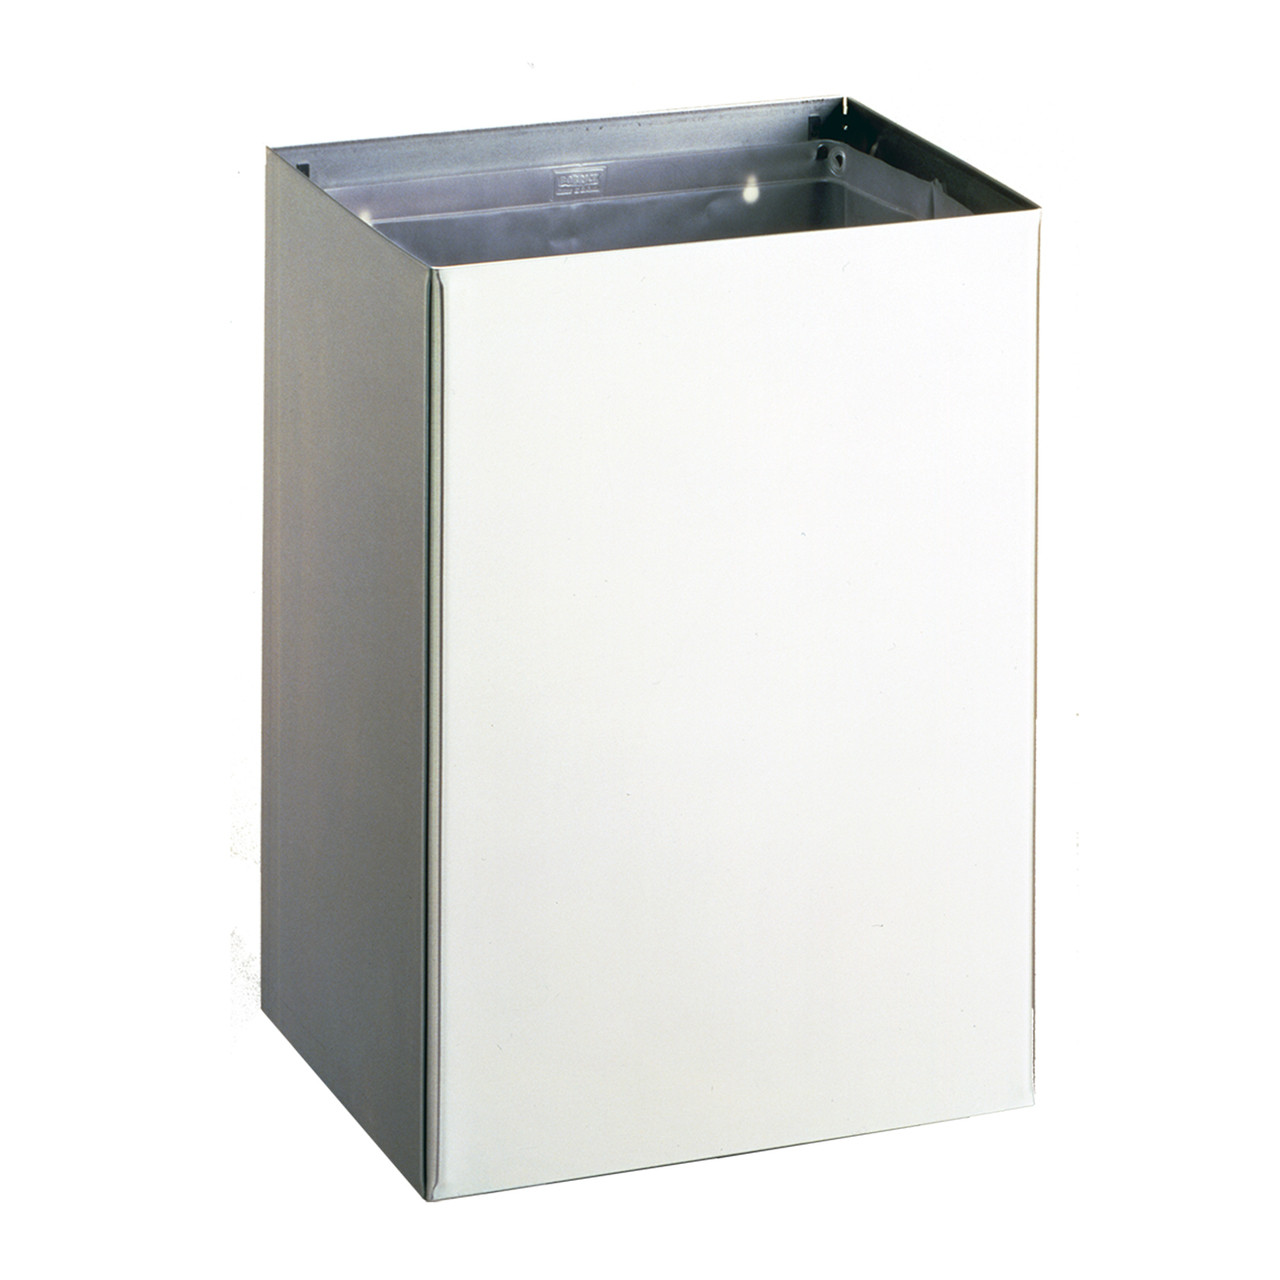 Bobrick B 275 Surface Mounted Waste Receptacle Handy